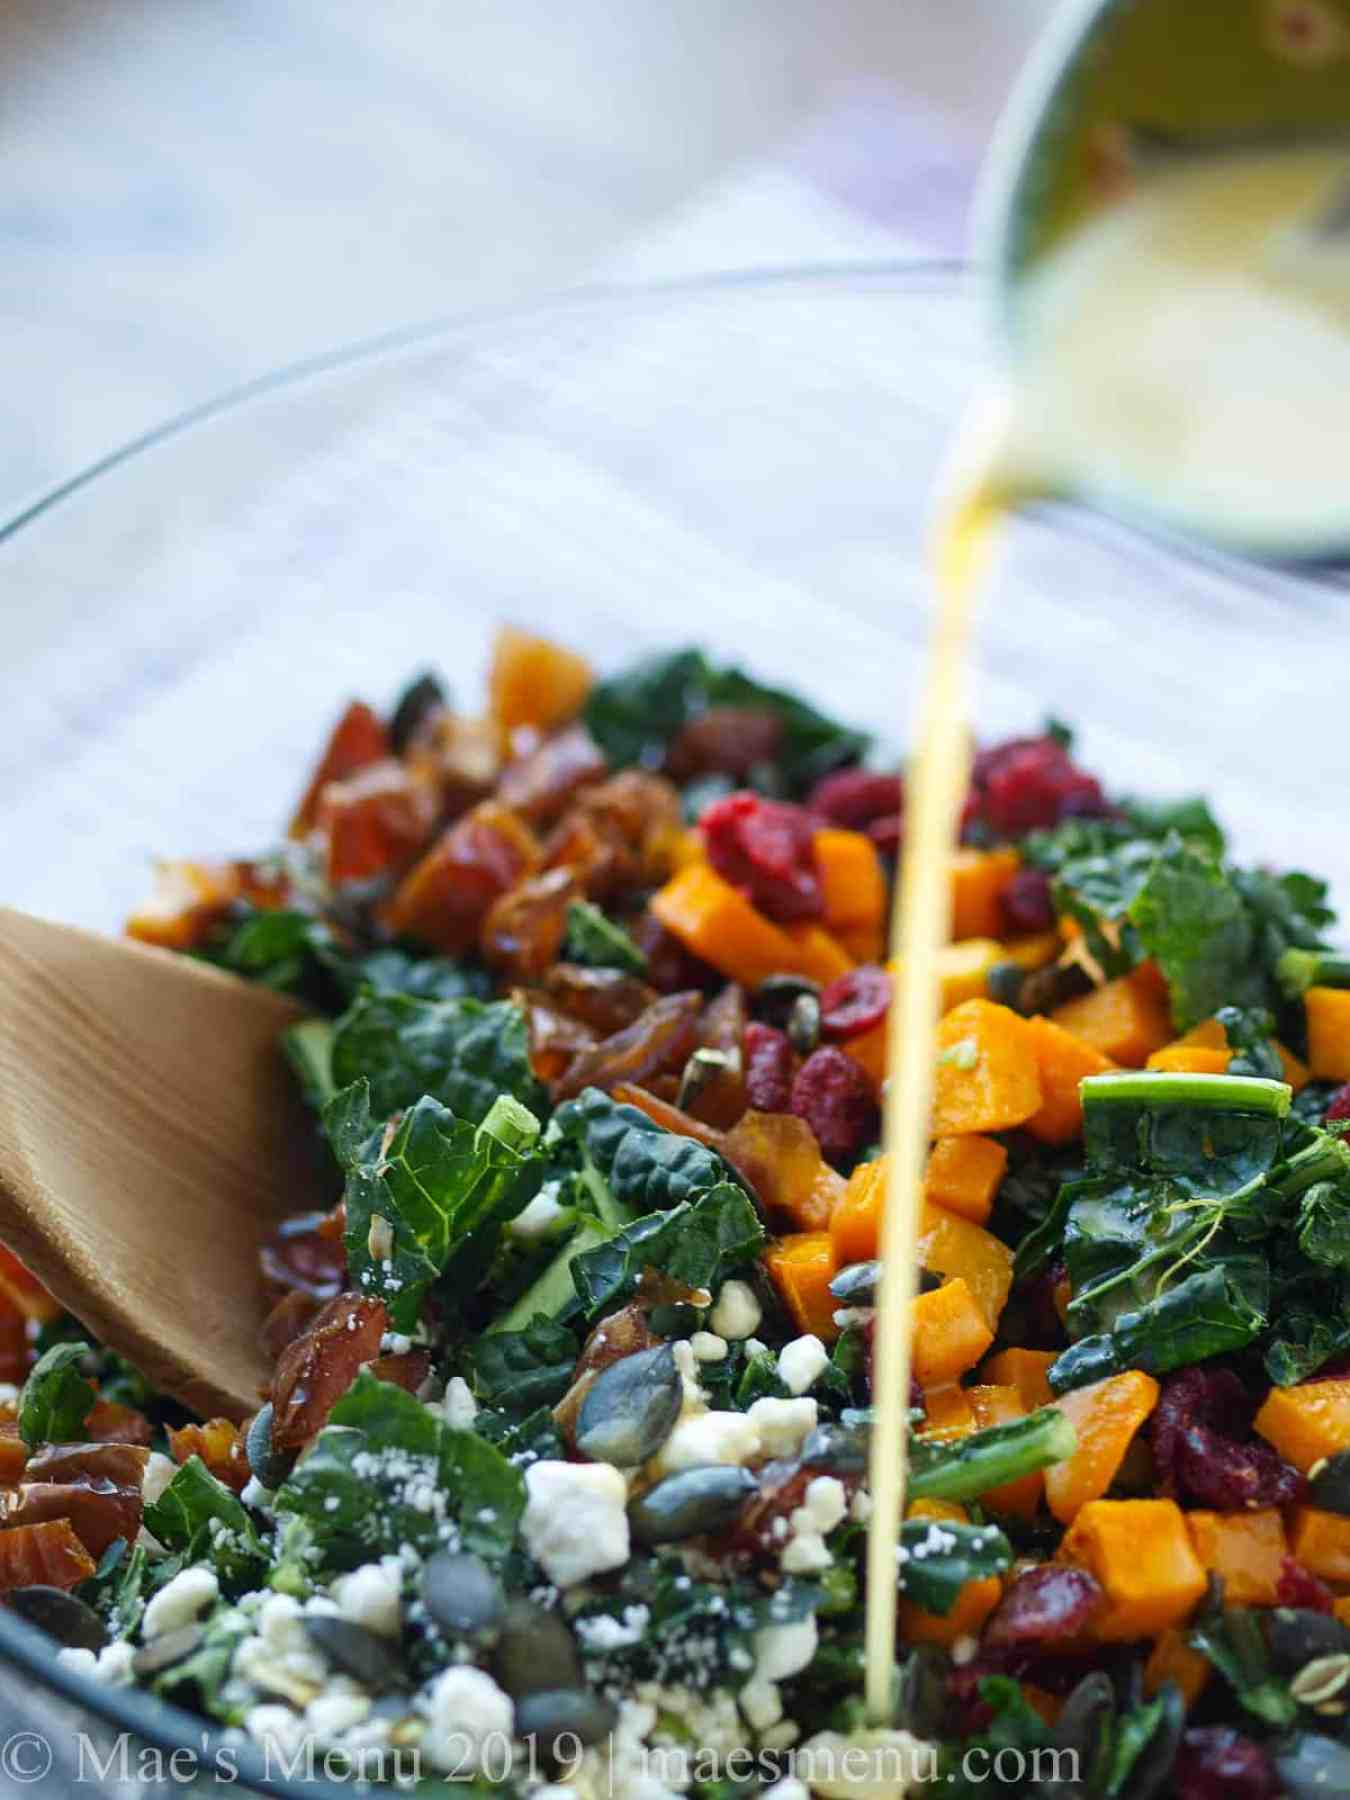 Holiday lacinato kale salad with citrus agave dressing drizzling over.